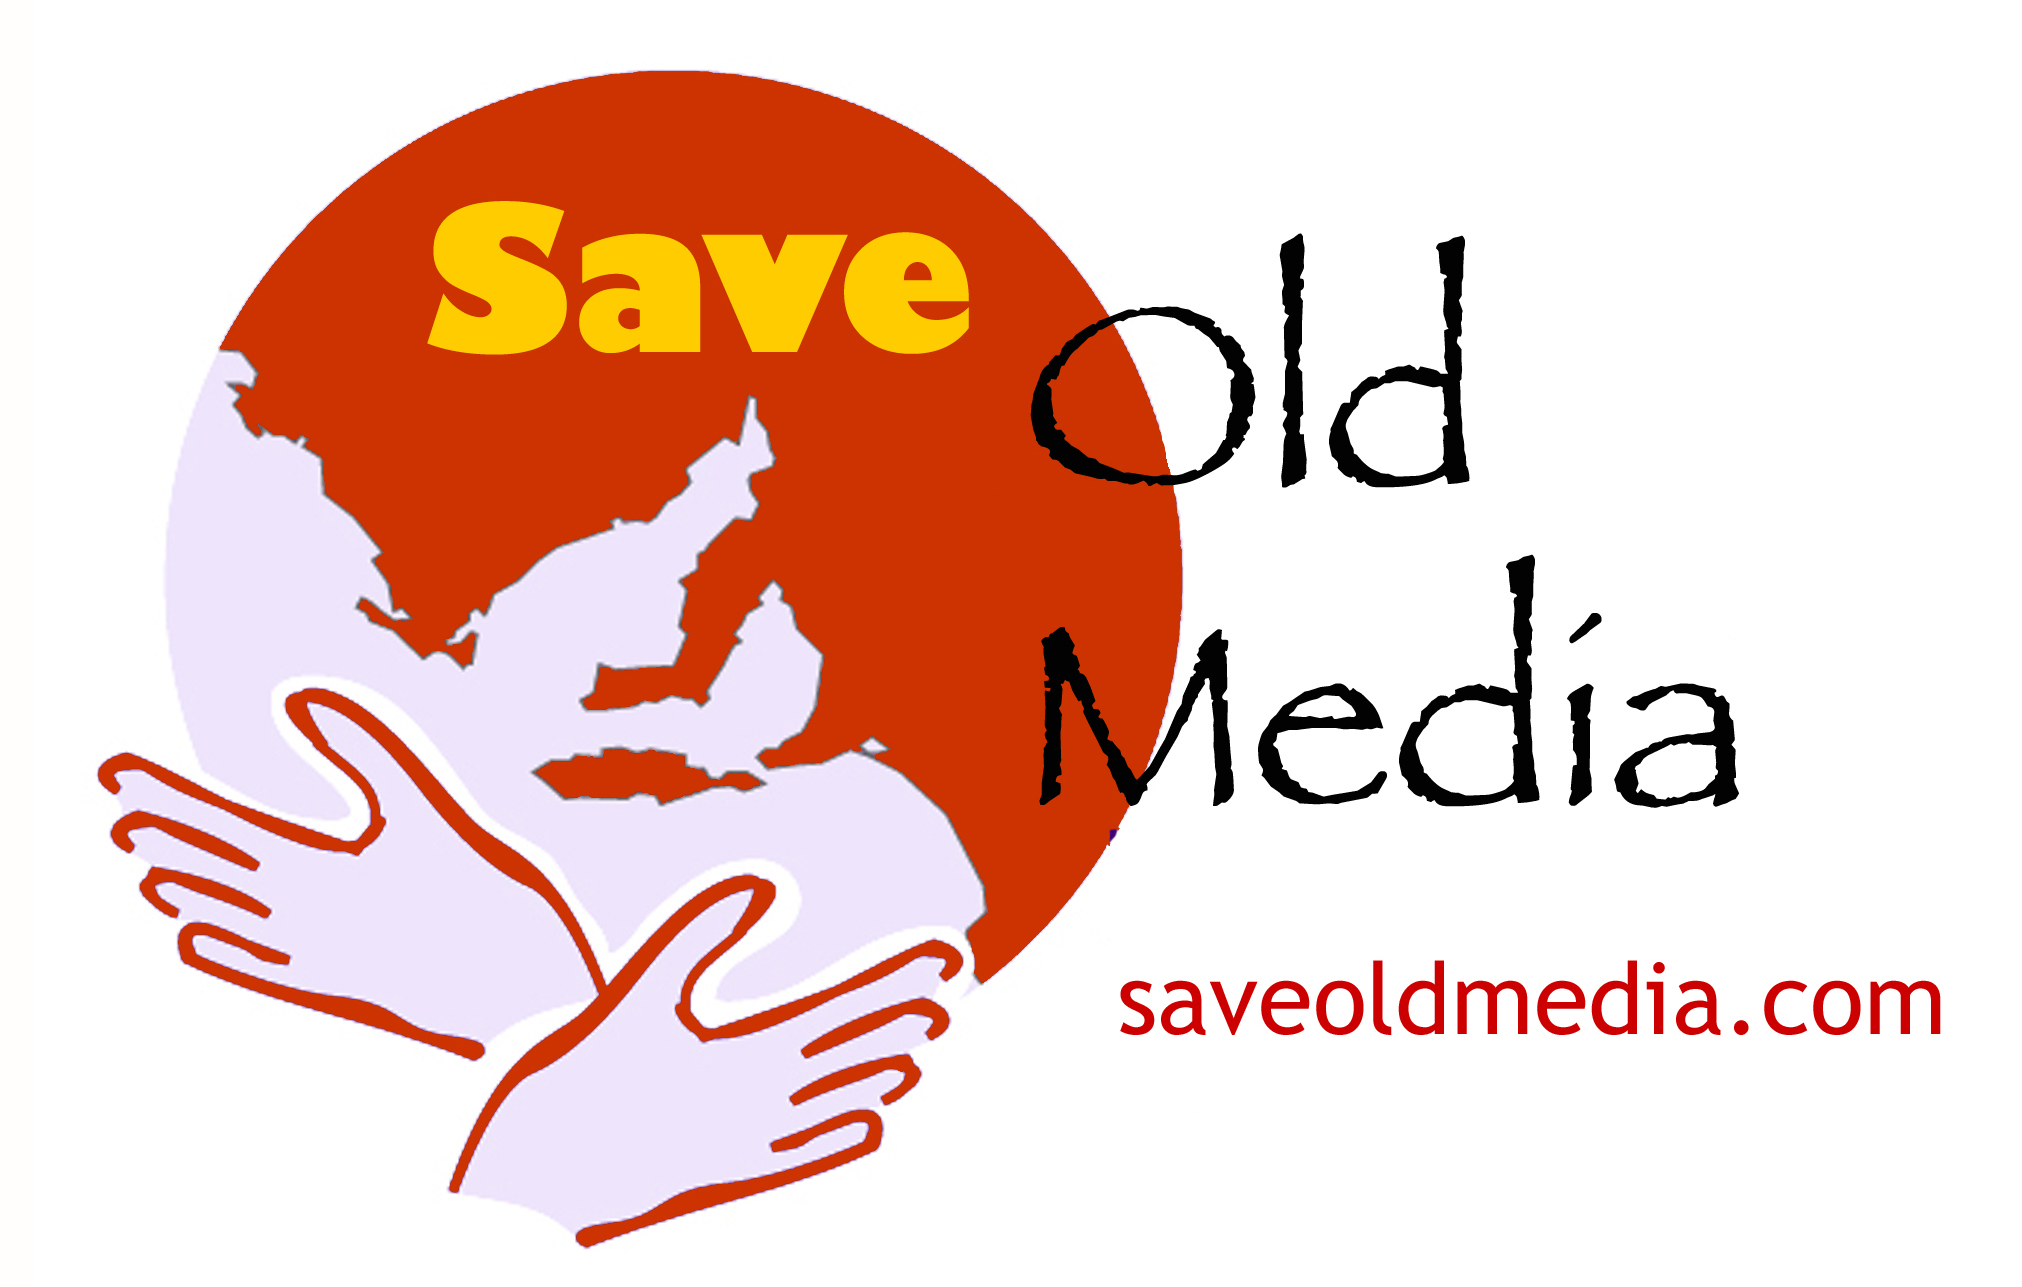 save old media logo